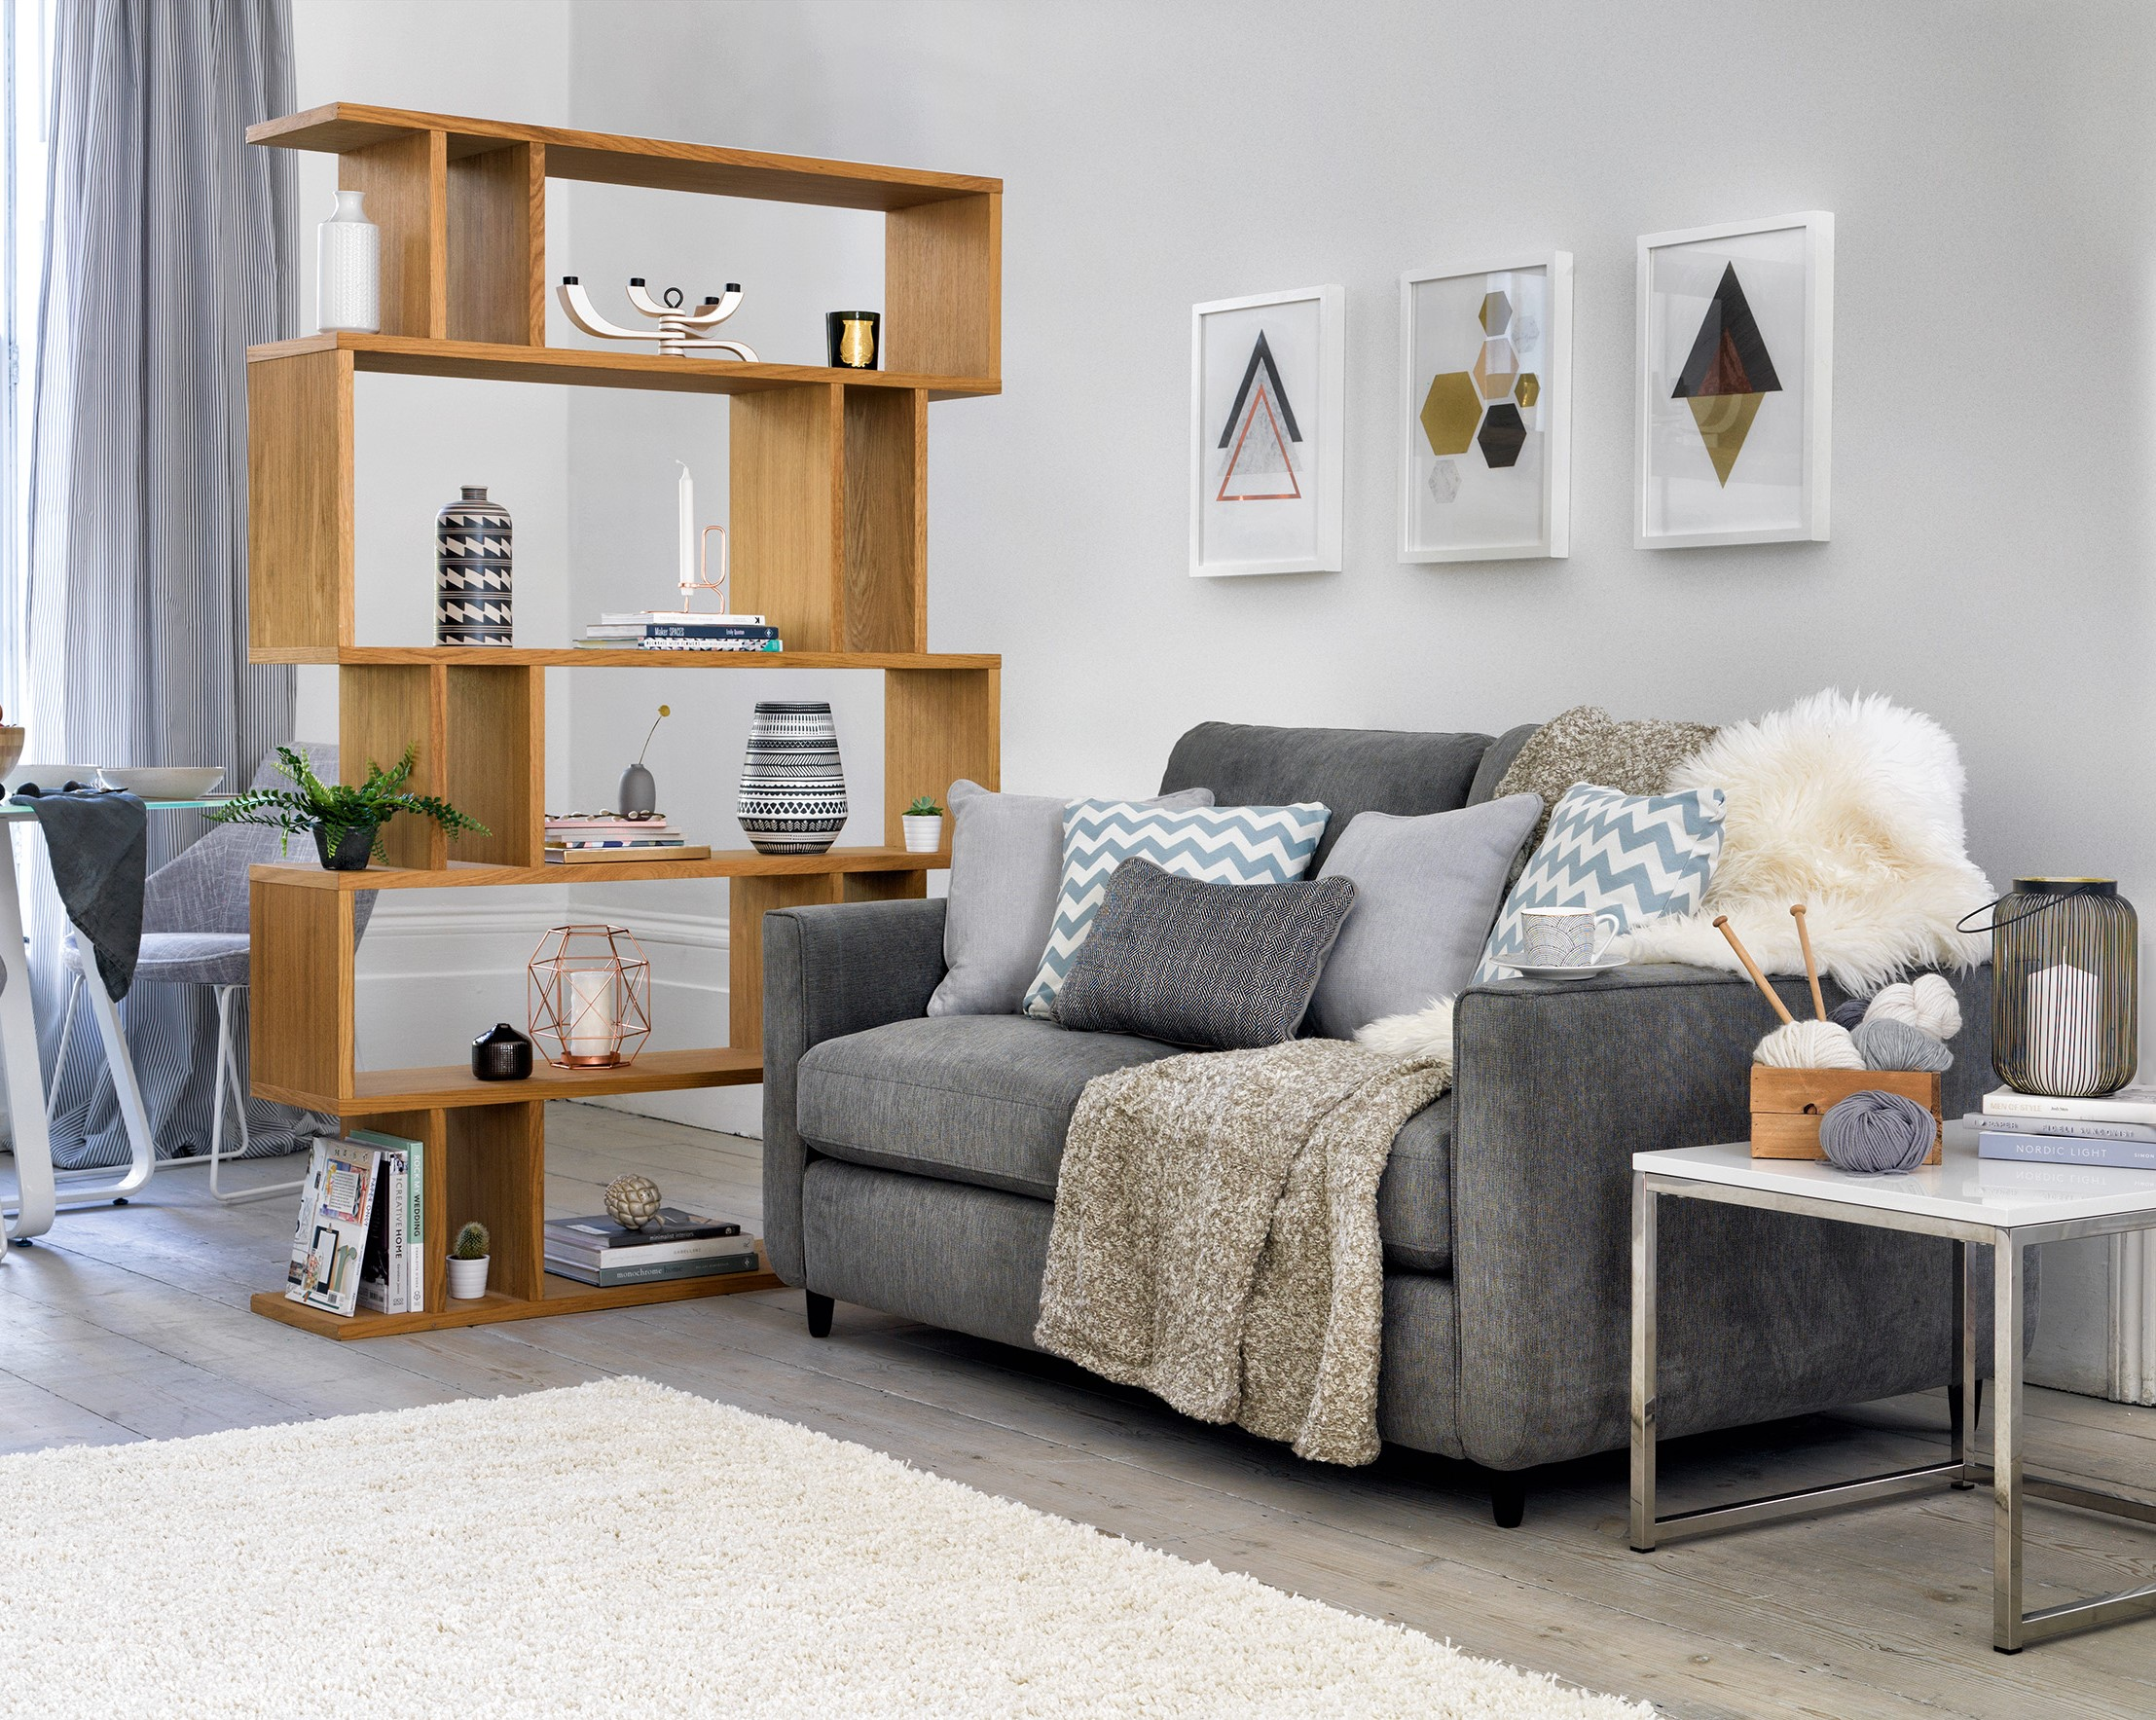 Esprit two seater fabric sofa, £549, currently reduced online to £499; Content by Conran Elmari tall shelving unit, £449, Furniture Village (Furniture Village/PA)